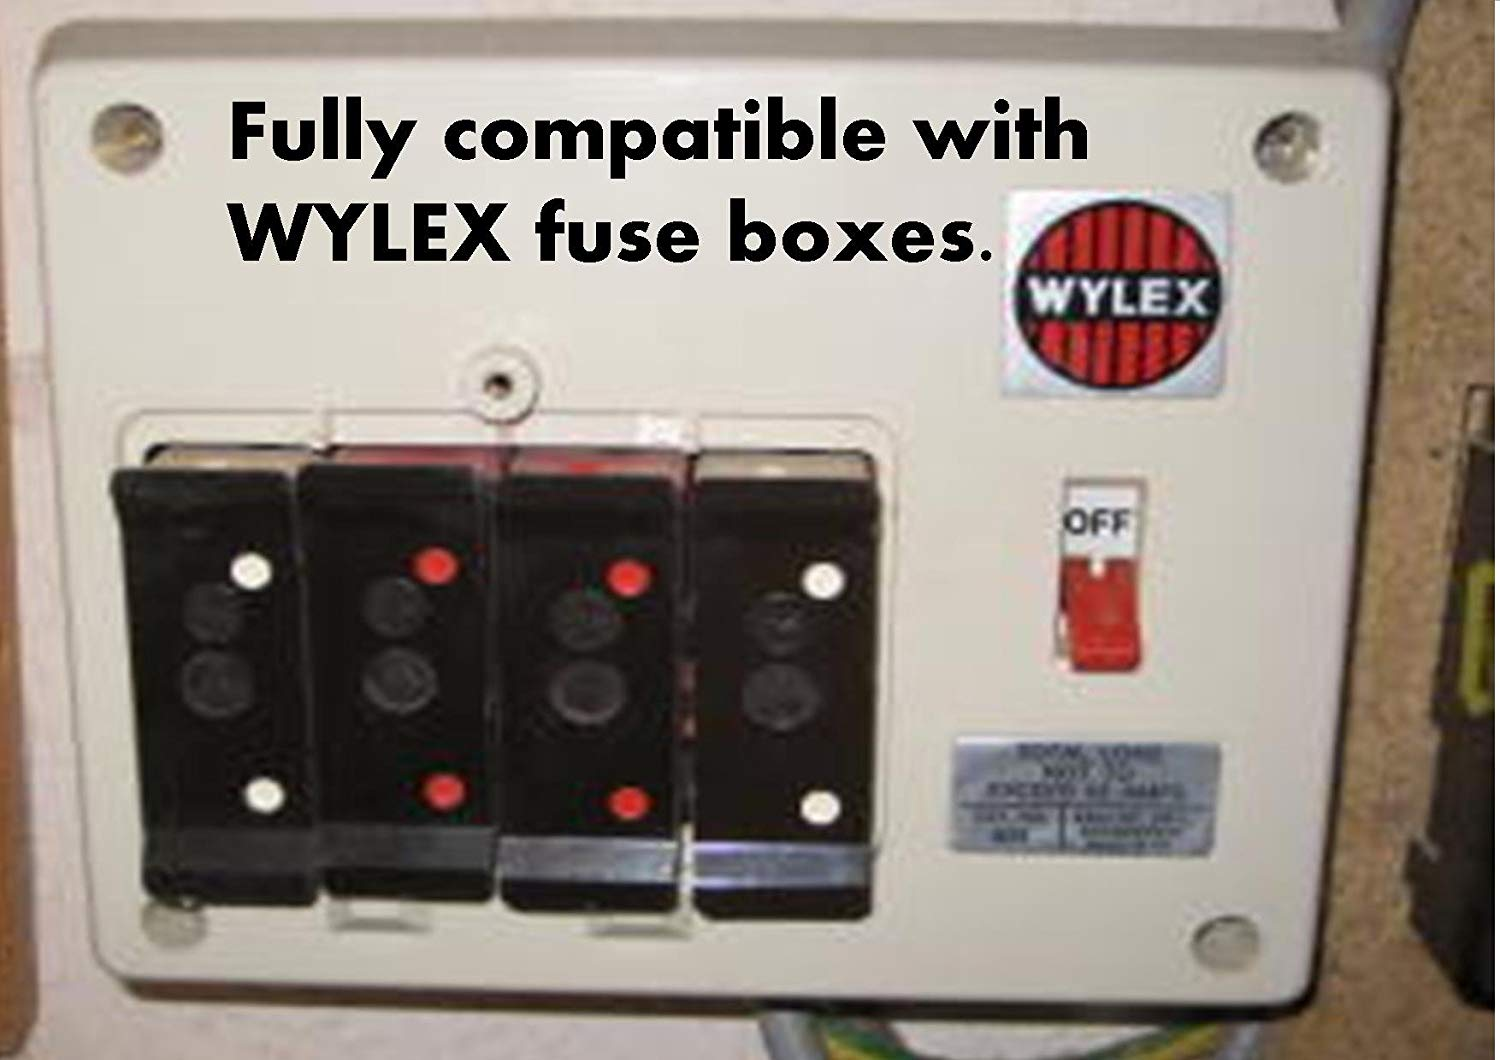 Wylex Fuse Box Instructions - Wiring Diagram Direct crop-secure -  crop-secure.siciliabeb.it | Wylex Fuse Box Mcb |  | crop-secure.siciliabeb.it